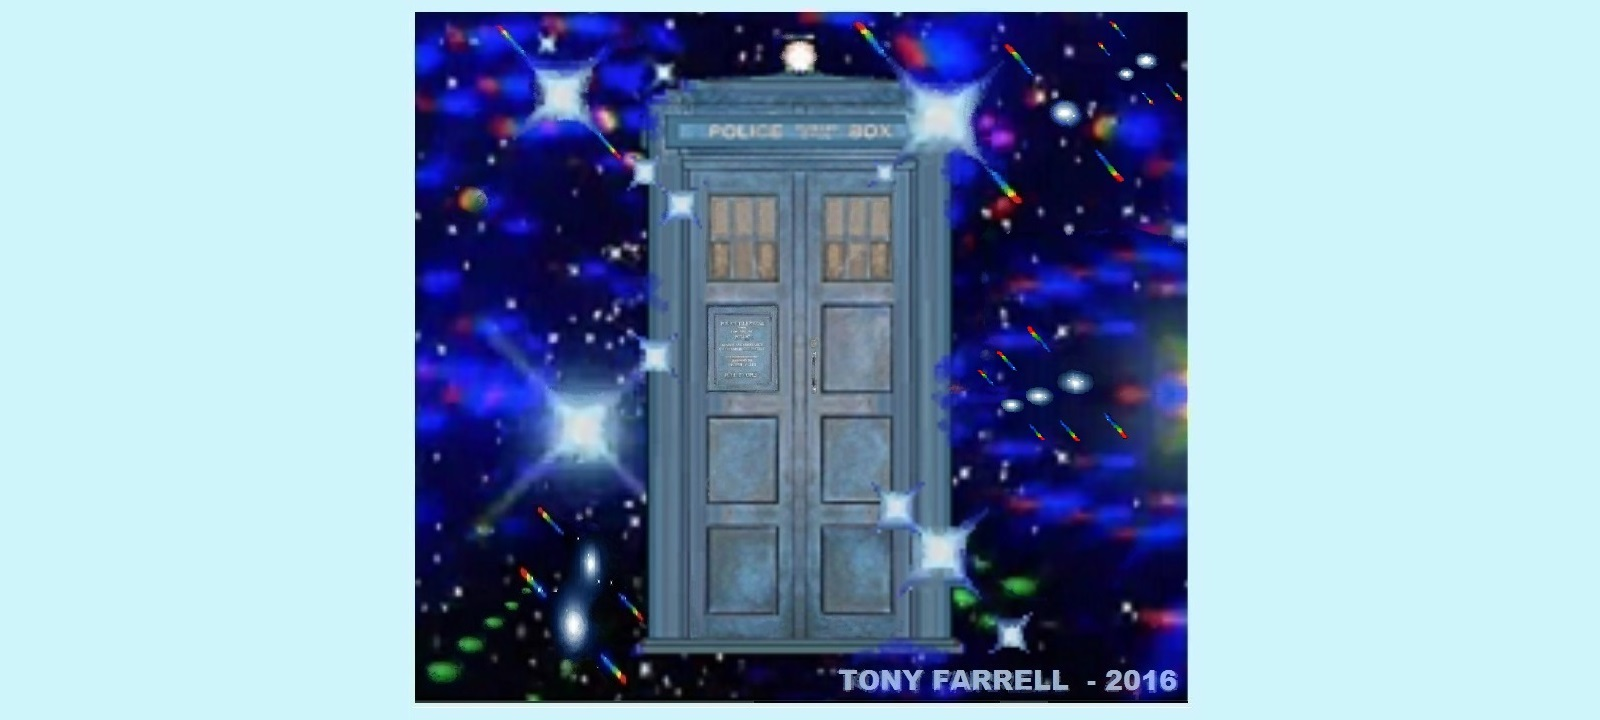 TARDIS SPACE-TIME CONTINUUM 1.jpg